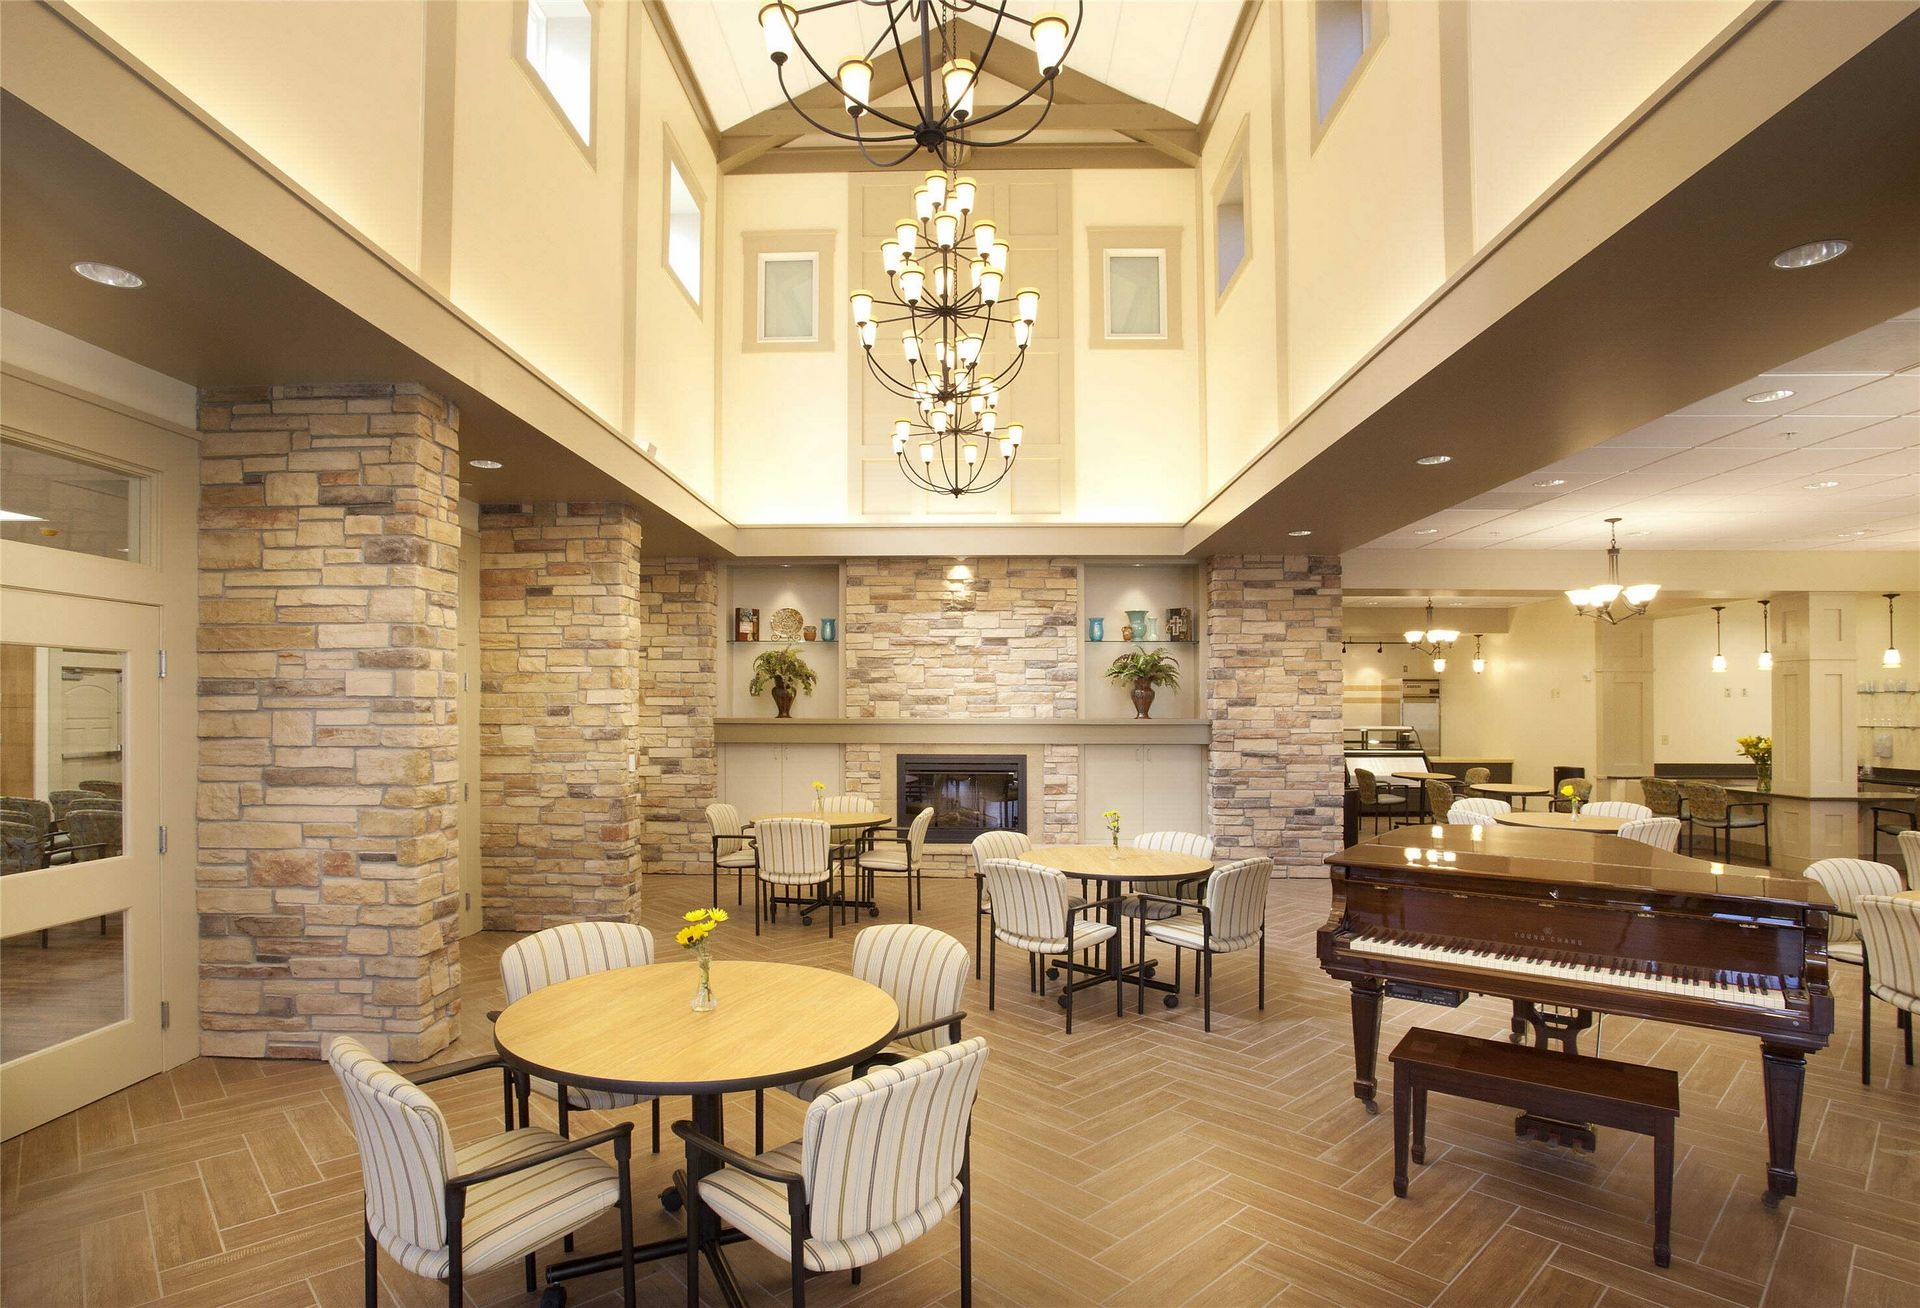 Kahl Home Skilled Nursing Design Music Dining